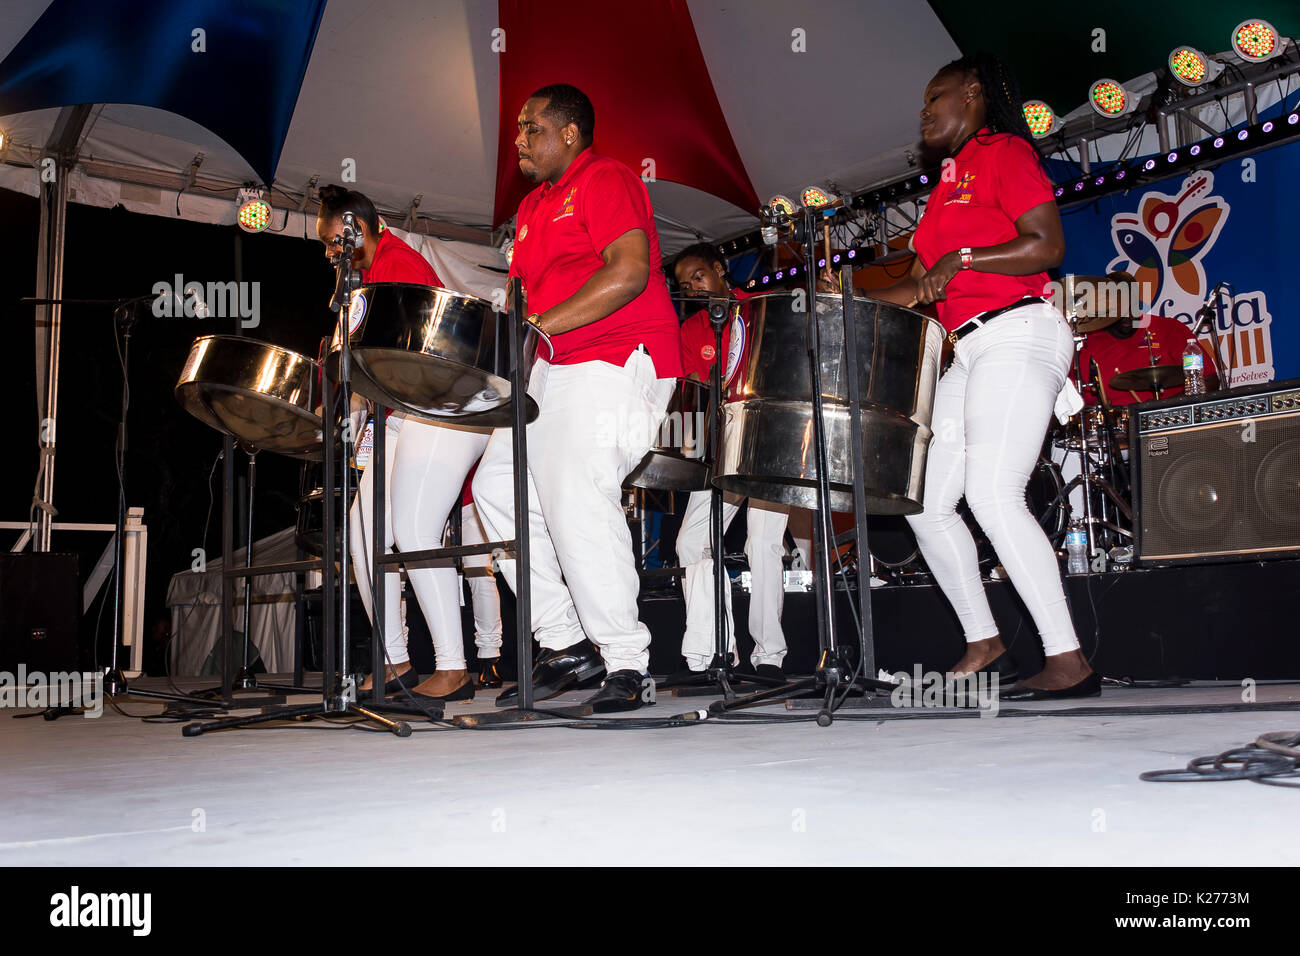 CARIFESTA X111 IN BARBADOS; SPICE AND COMPANY; AARON DUNCAN; CLAUDETTE PETERS PERFORMING - Stock Image